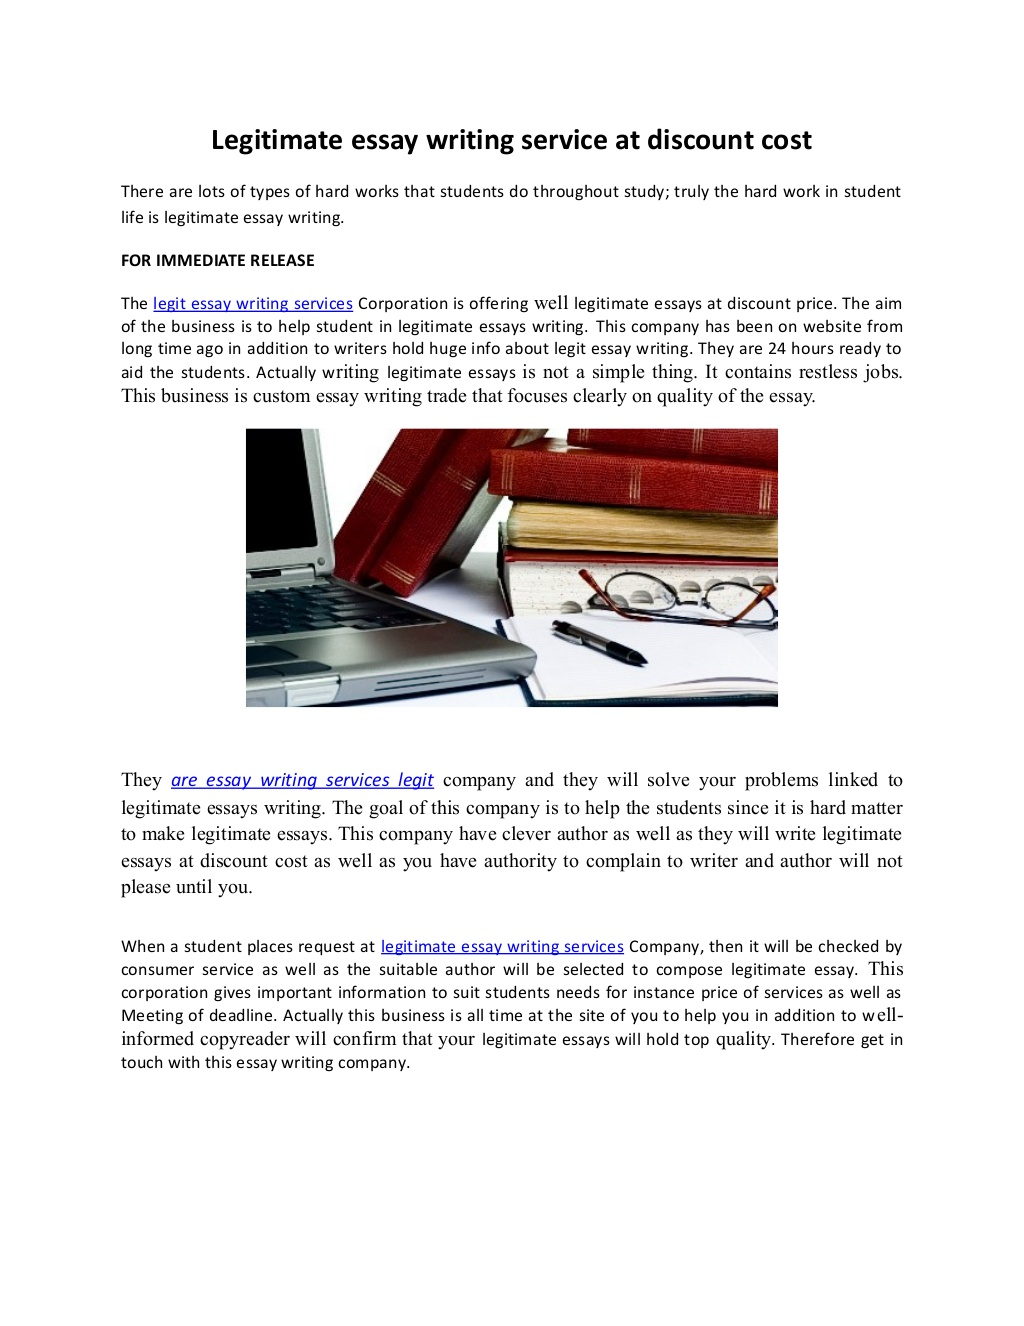 legitimate online writing companies School paper writing services are there any legitimate essay writing companies private essay writer write my essay 4 me review.